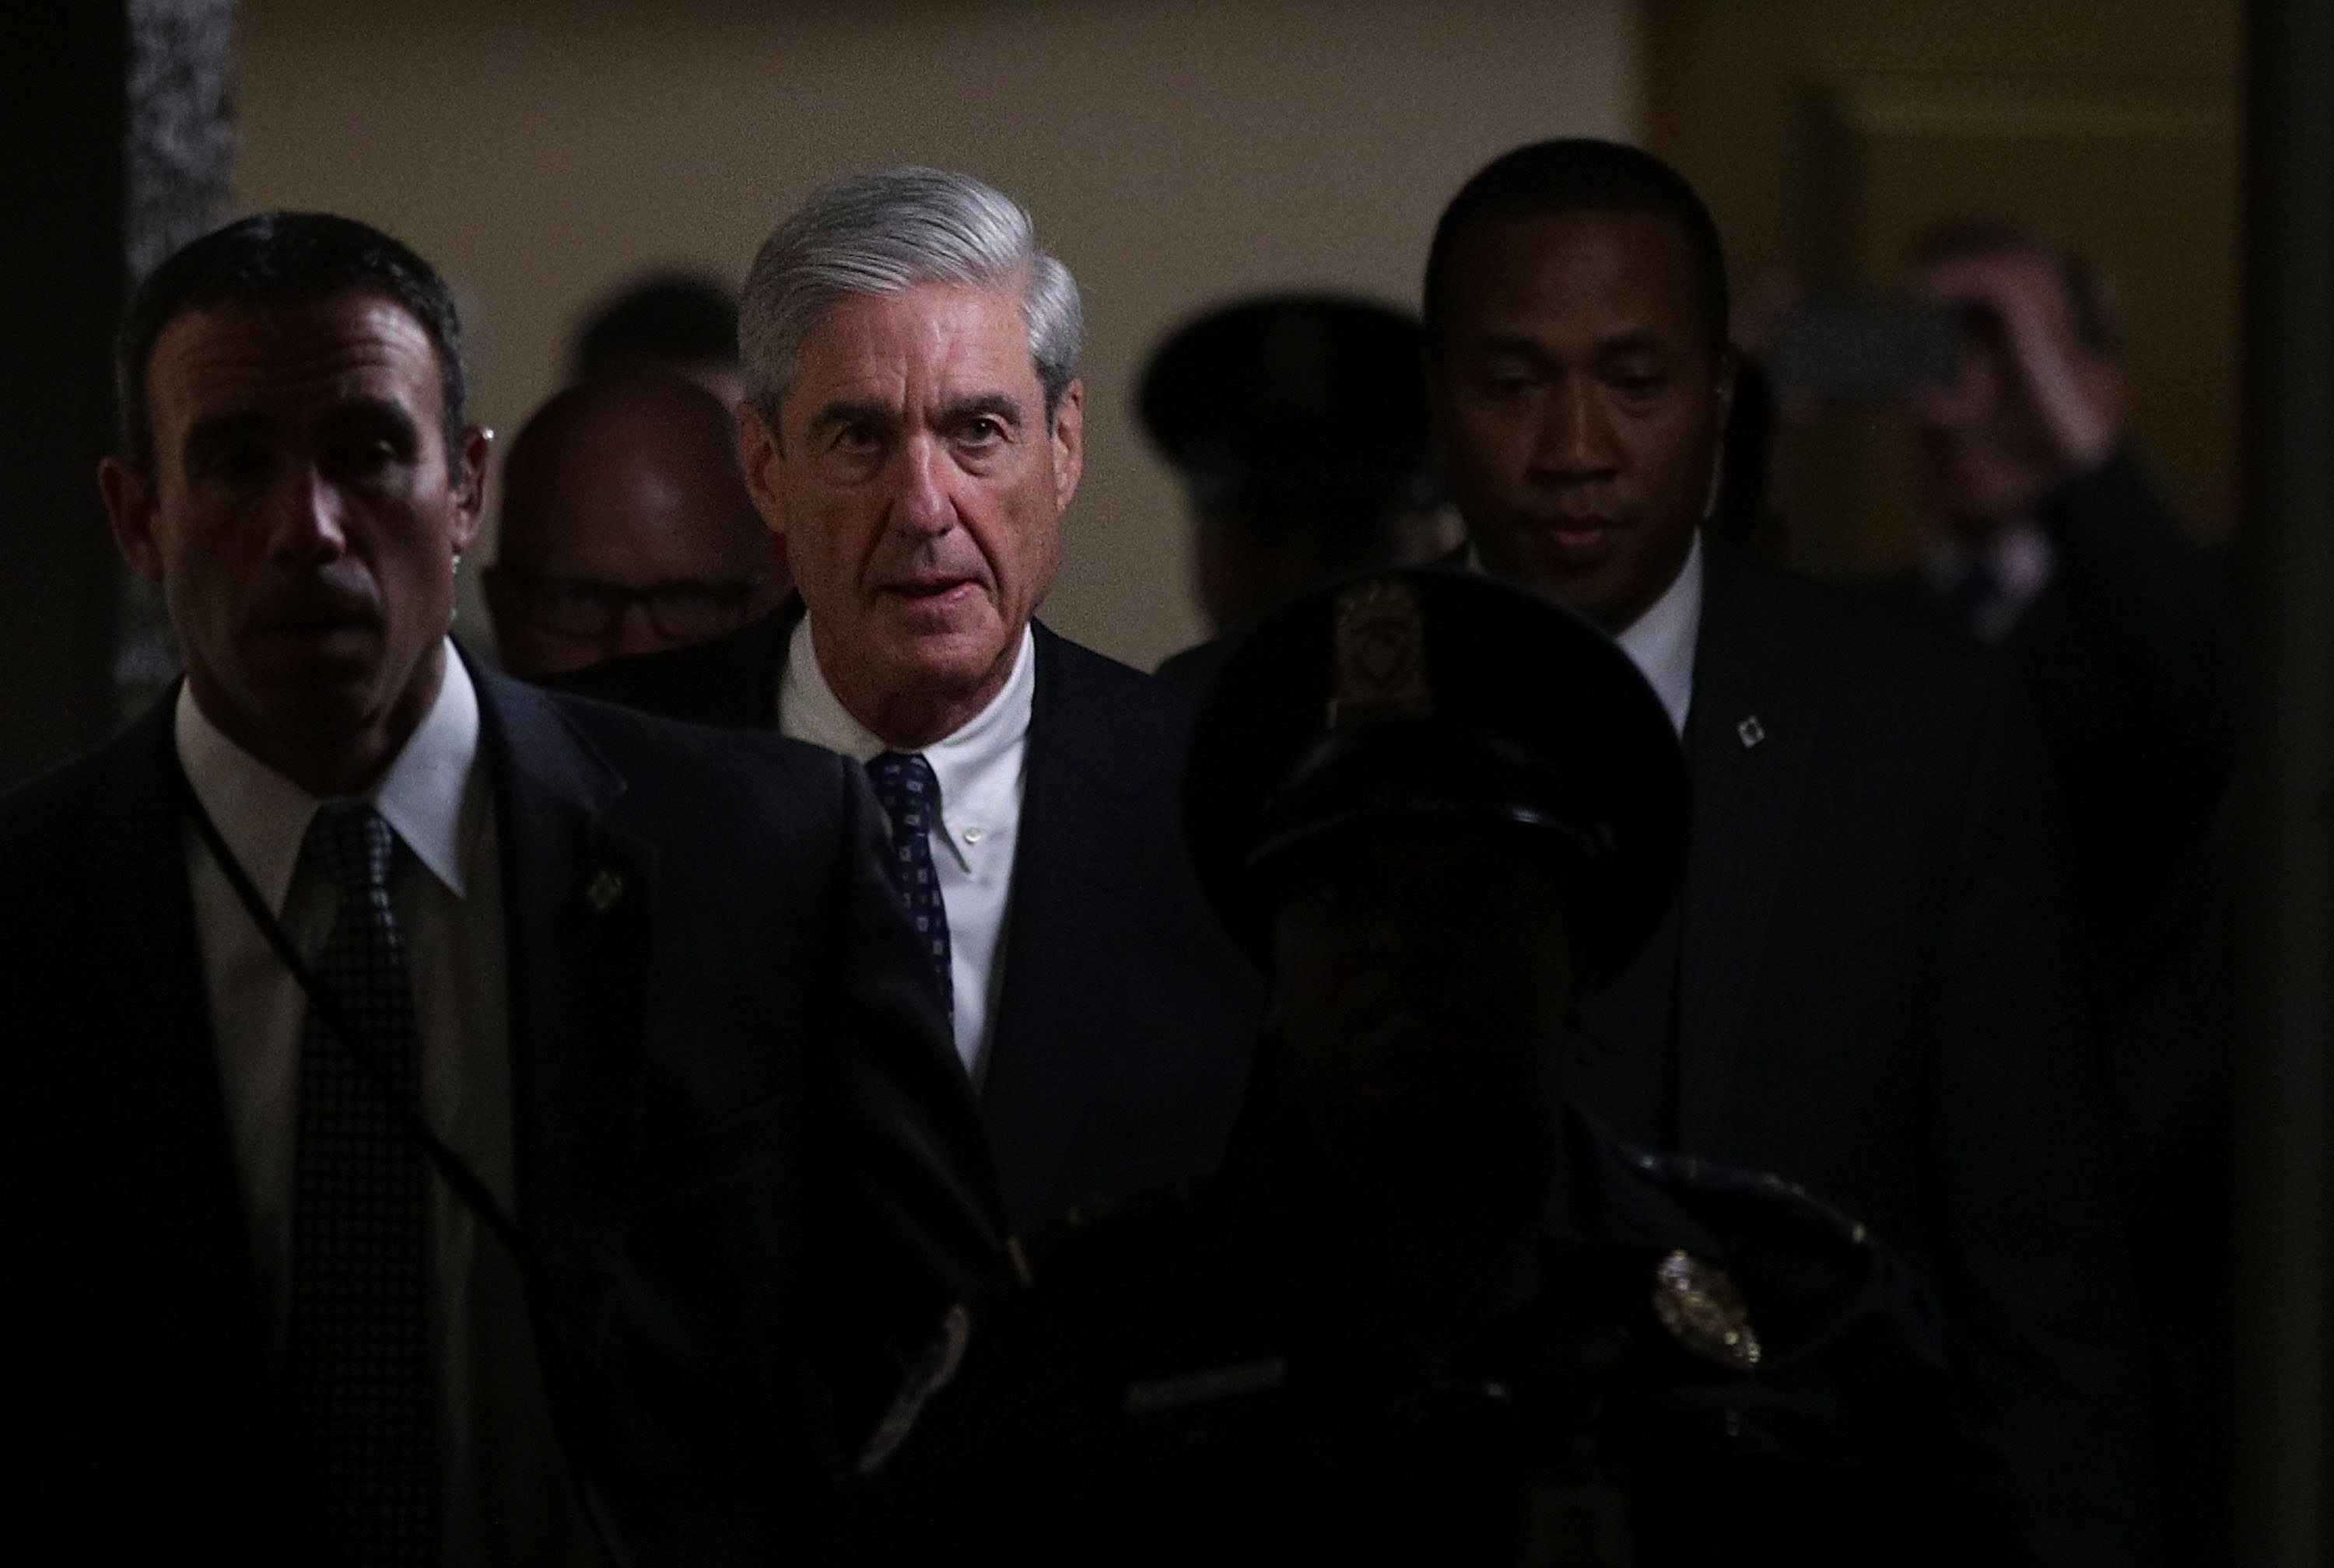 Special counsel Robert Mueller (2nd L) leaves after a closed meeting with members of the Senate Judiciary Committee June 21, 2017 at the Capitol in Washington, DC. The committee meets with Mueller to discuss the firing of former FBI Director James Comey. (Getty Images)